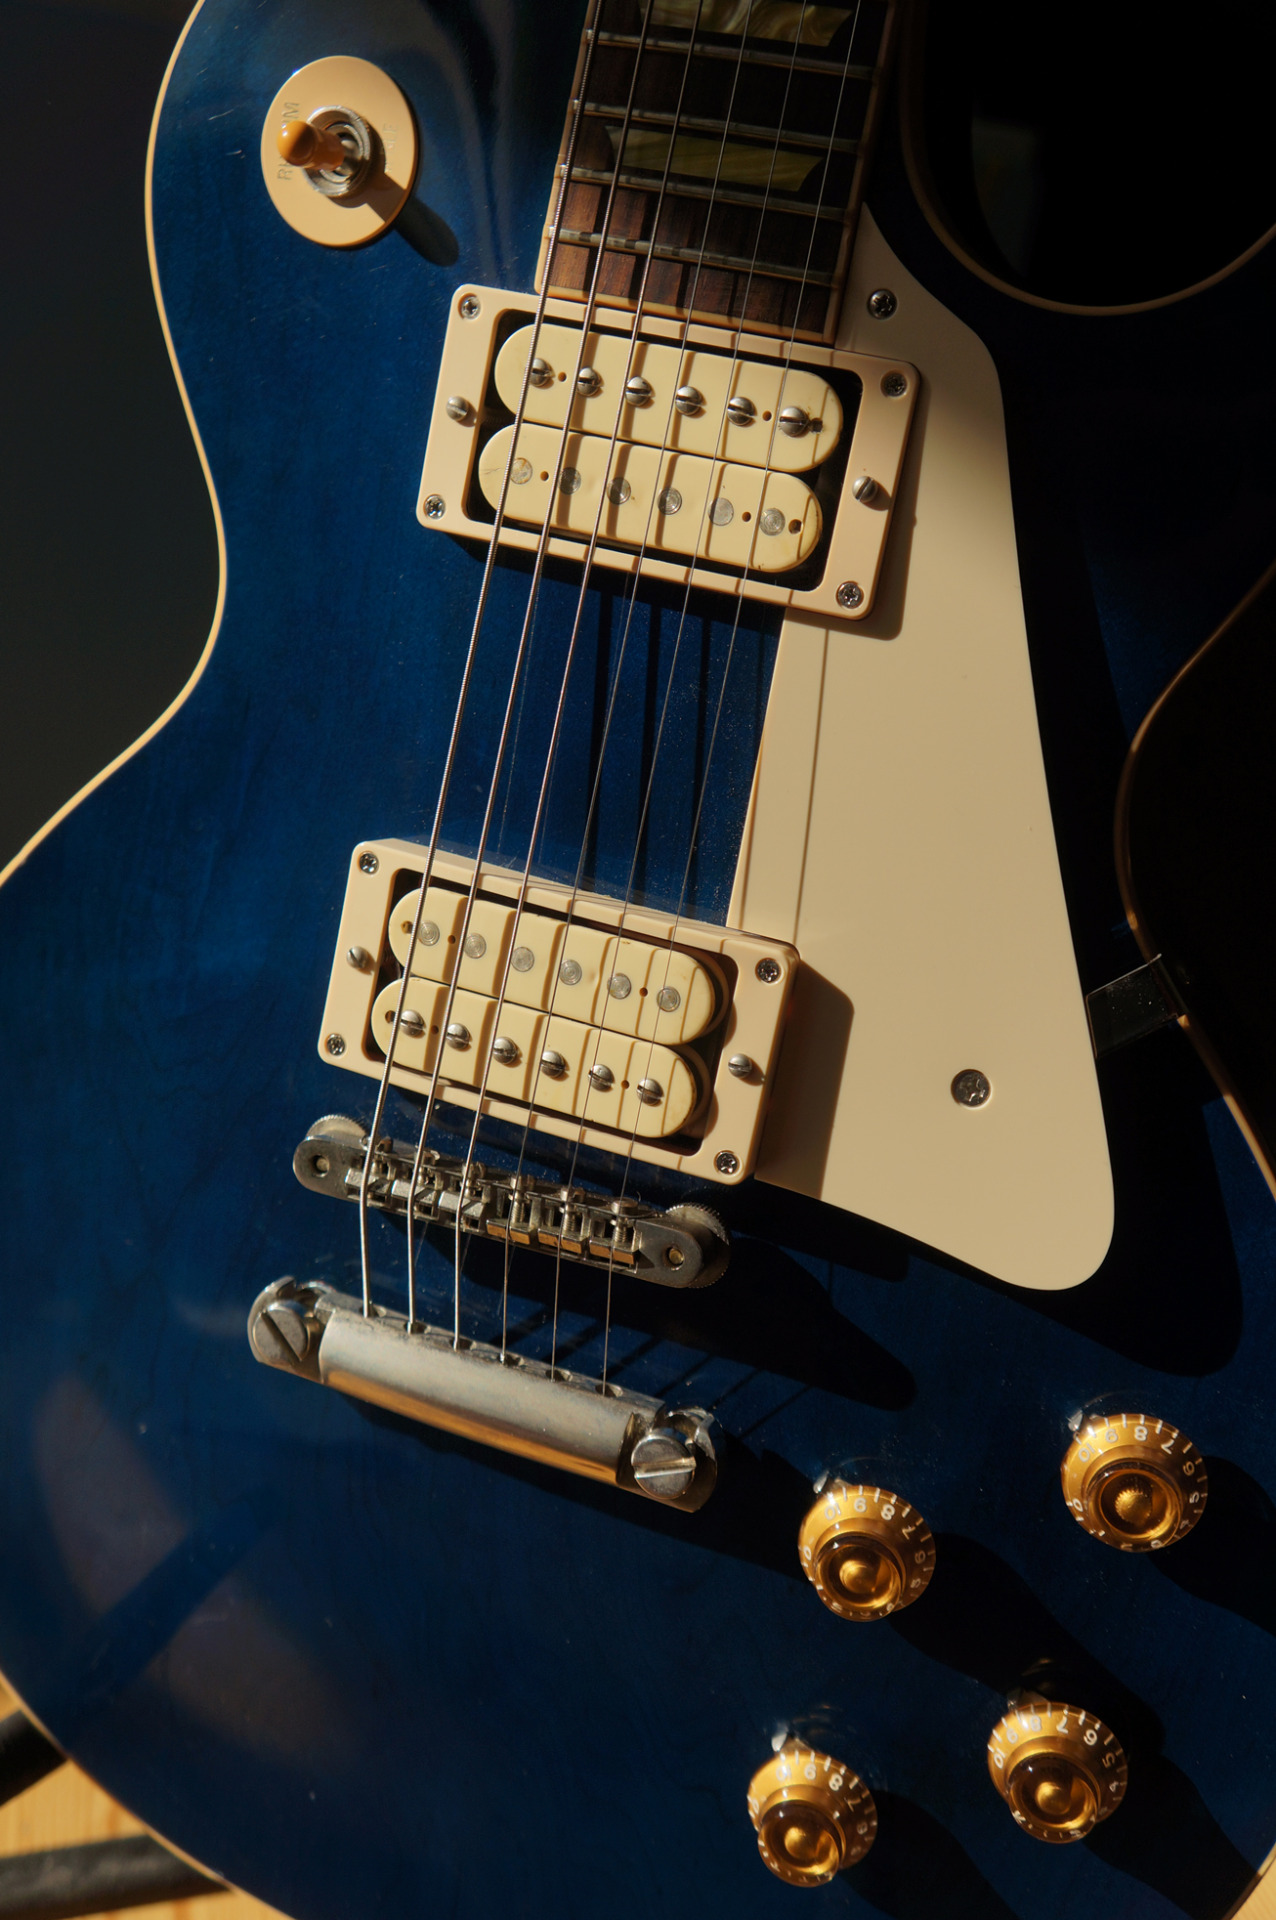 hight resolution of re post ngd questions 2001 les paul classic blue top